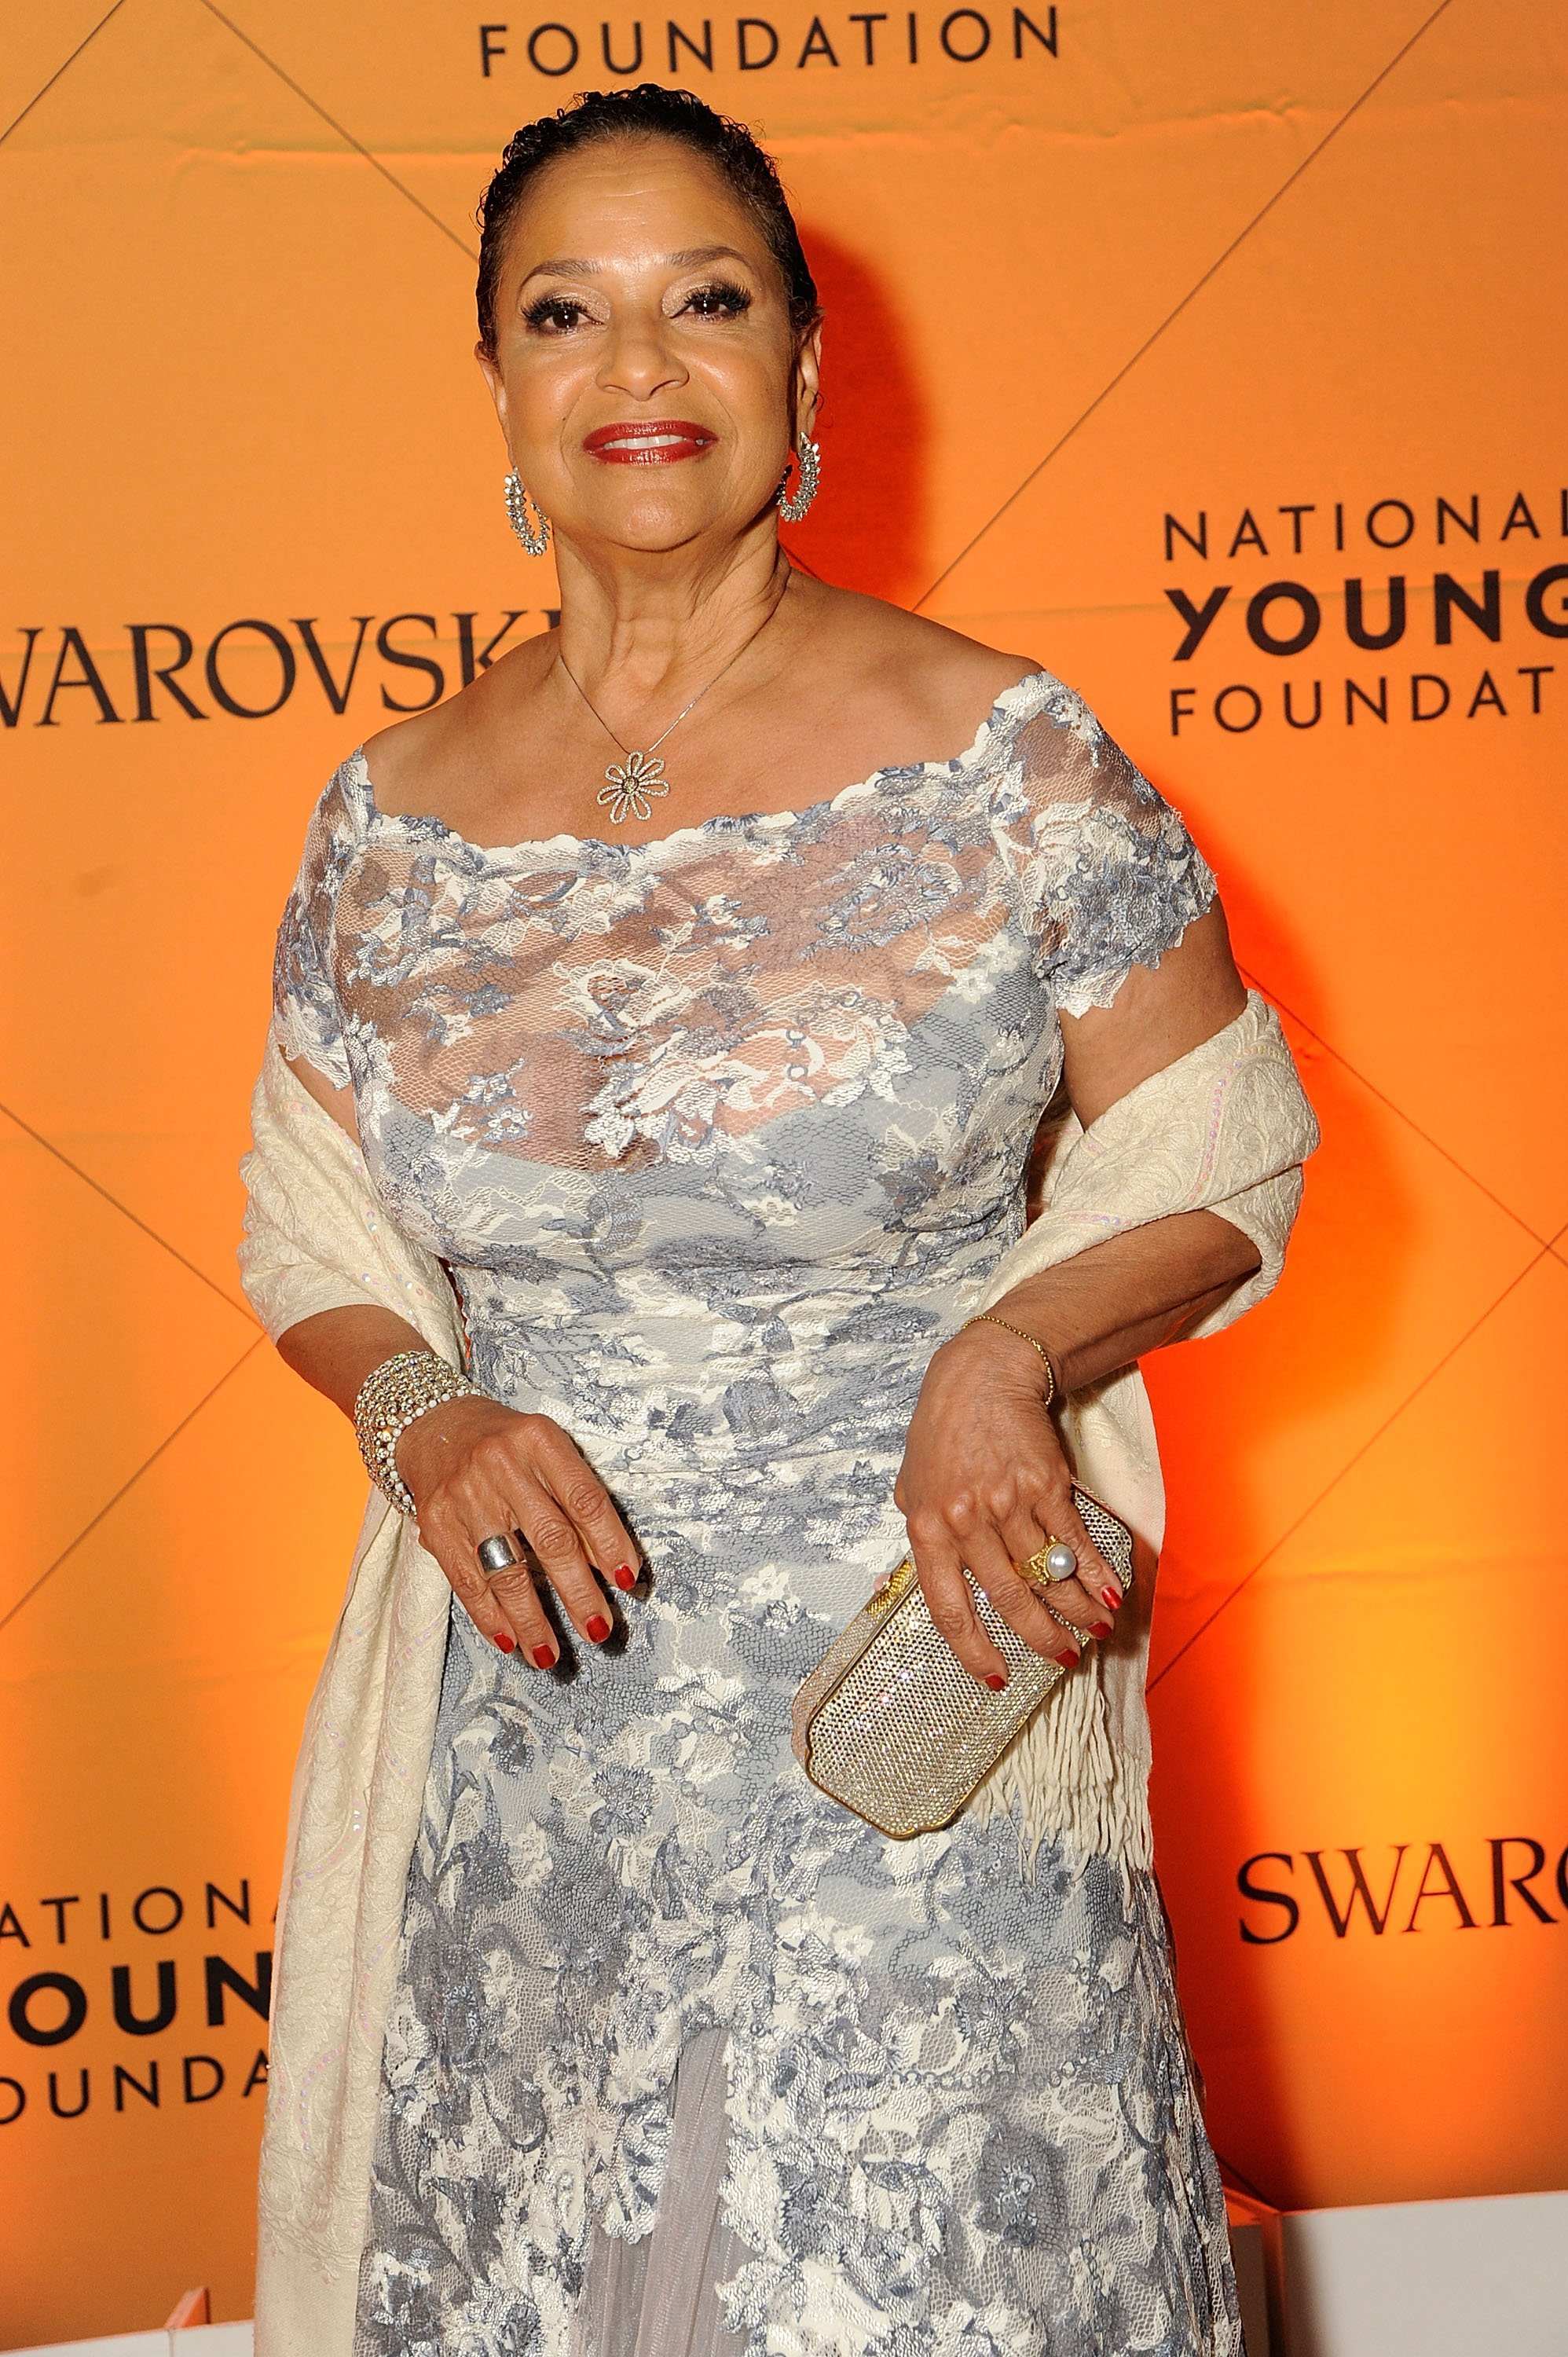 Debbie Allen at the 2nd Annual National Arts Foundation New York Gala on Apr. 20, 2017 in New York City | Photo: Getty Images